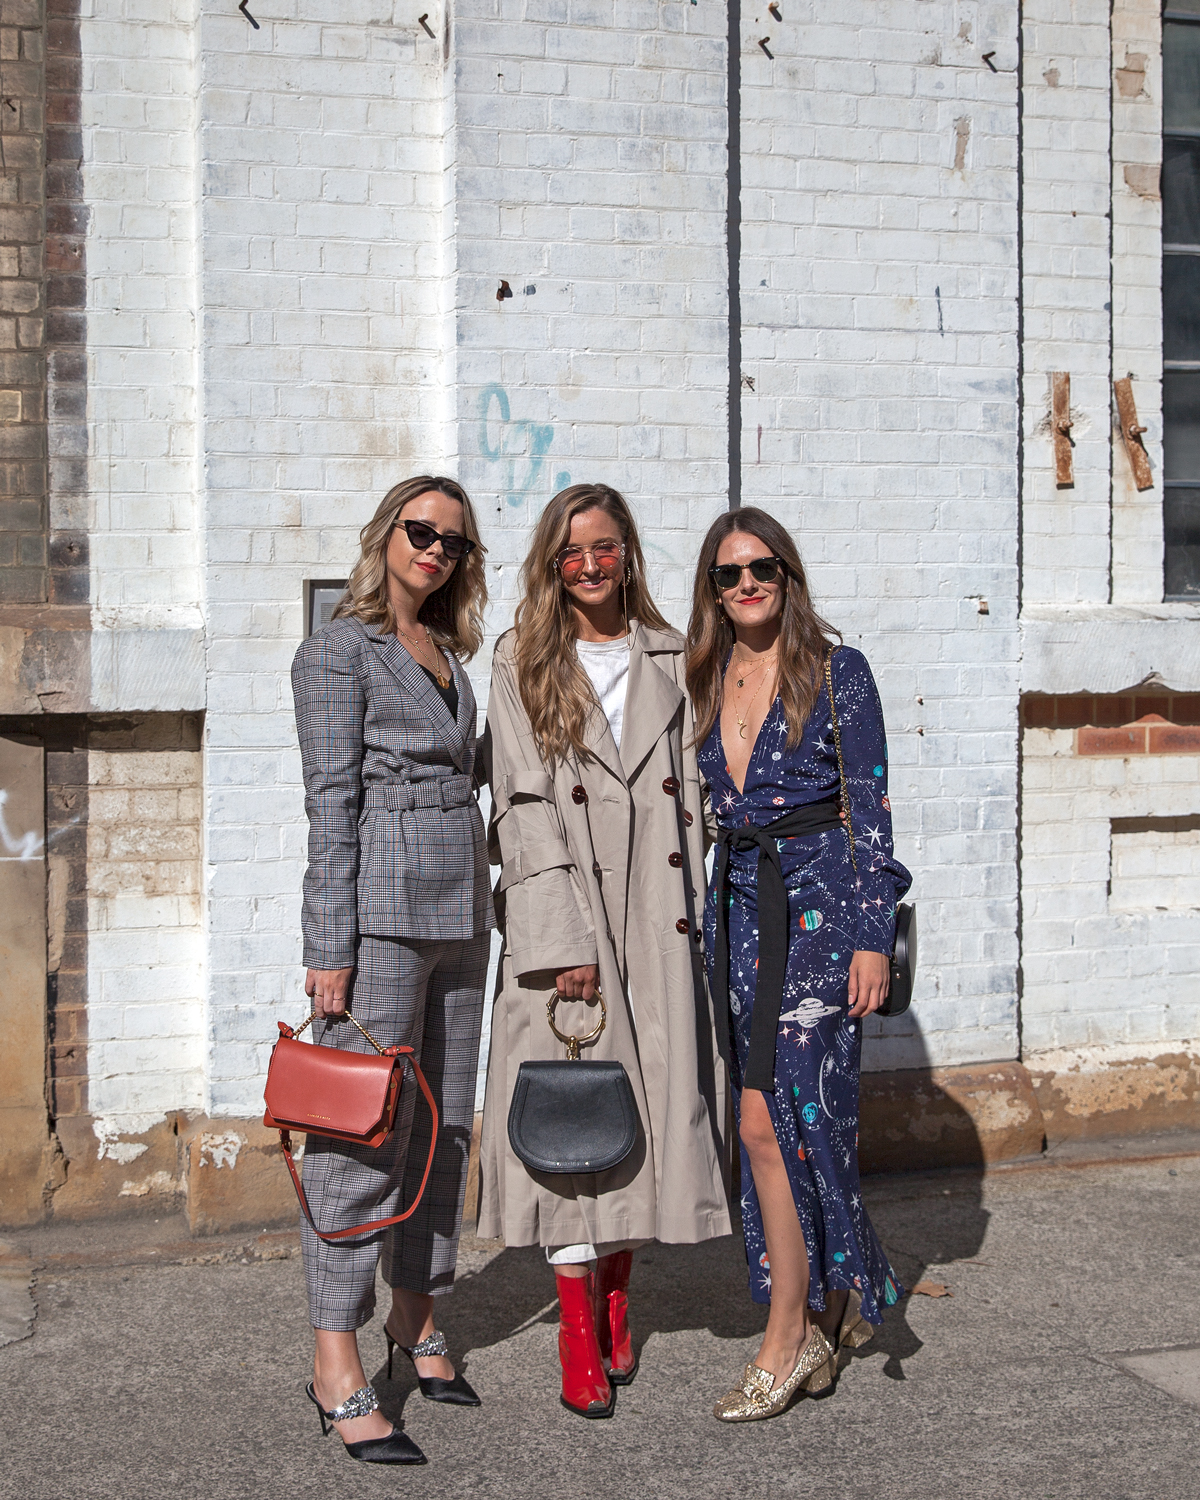 Rachel James Kirsten Anderton and Jenelle Witty from Inspiring Wit at MBFWA 2018 with Dyson Hair street style